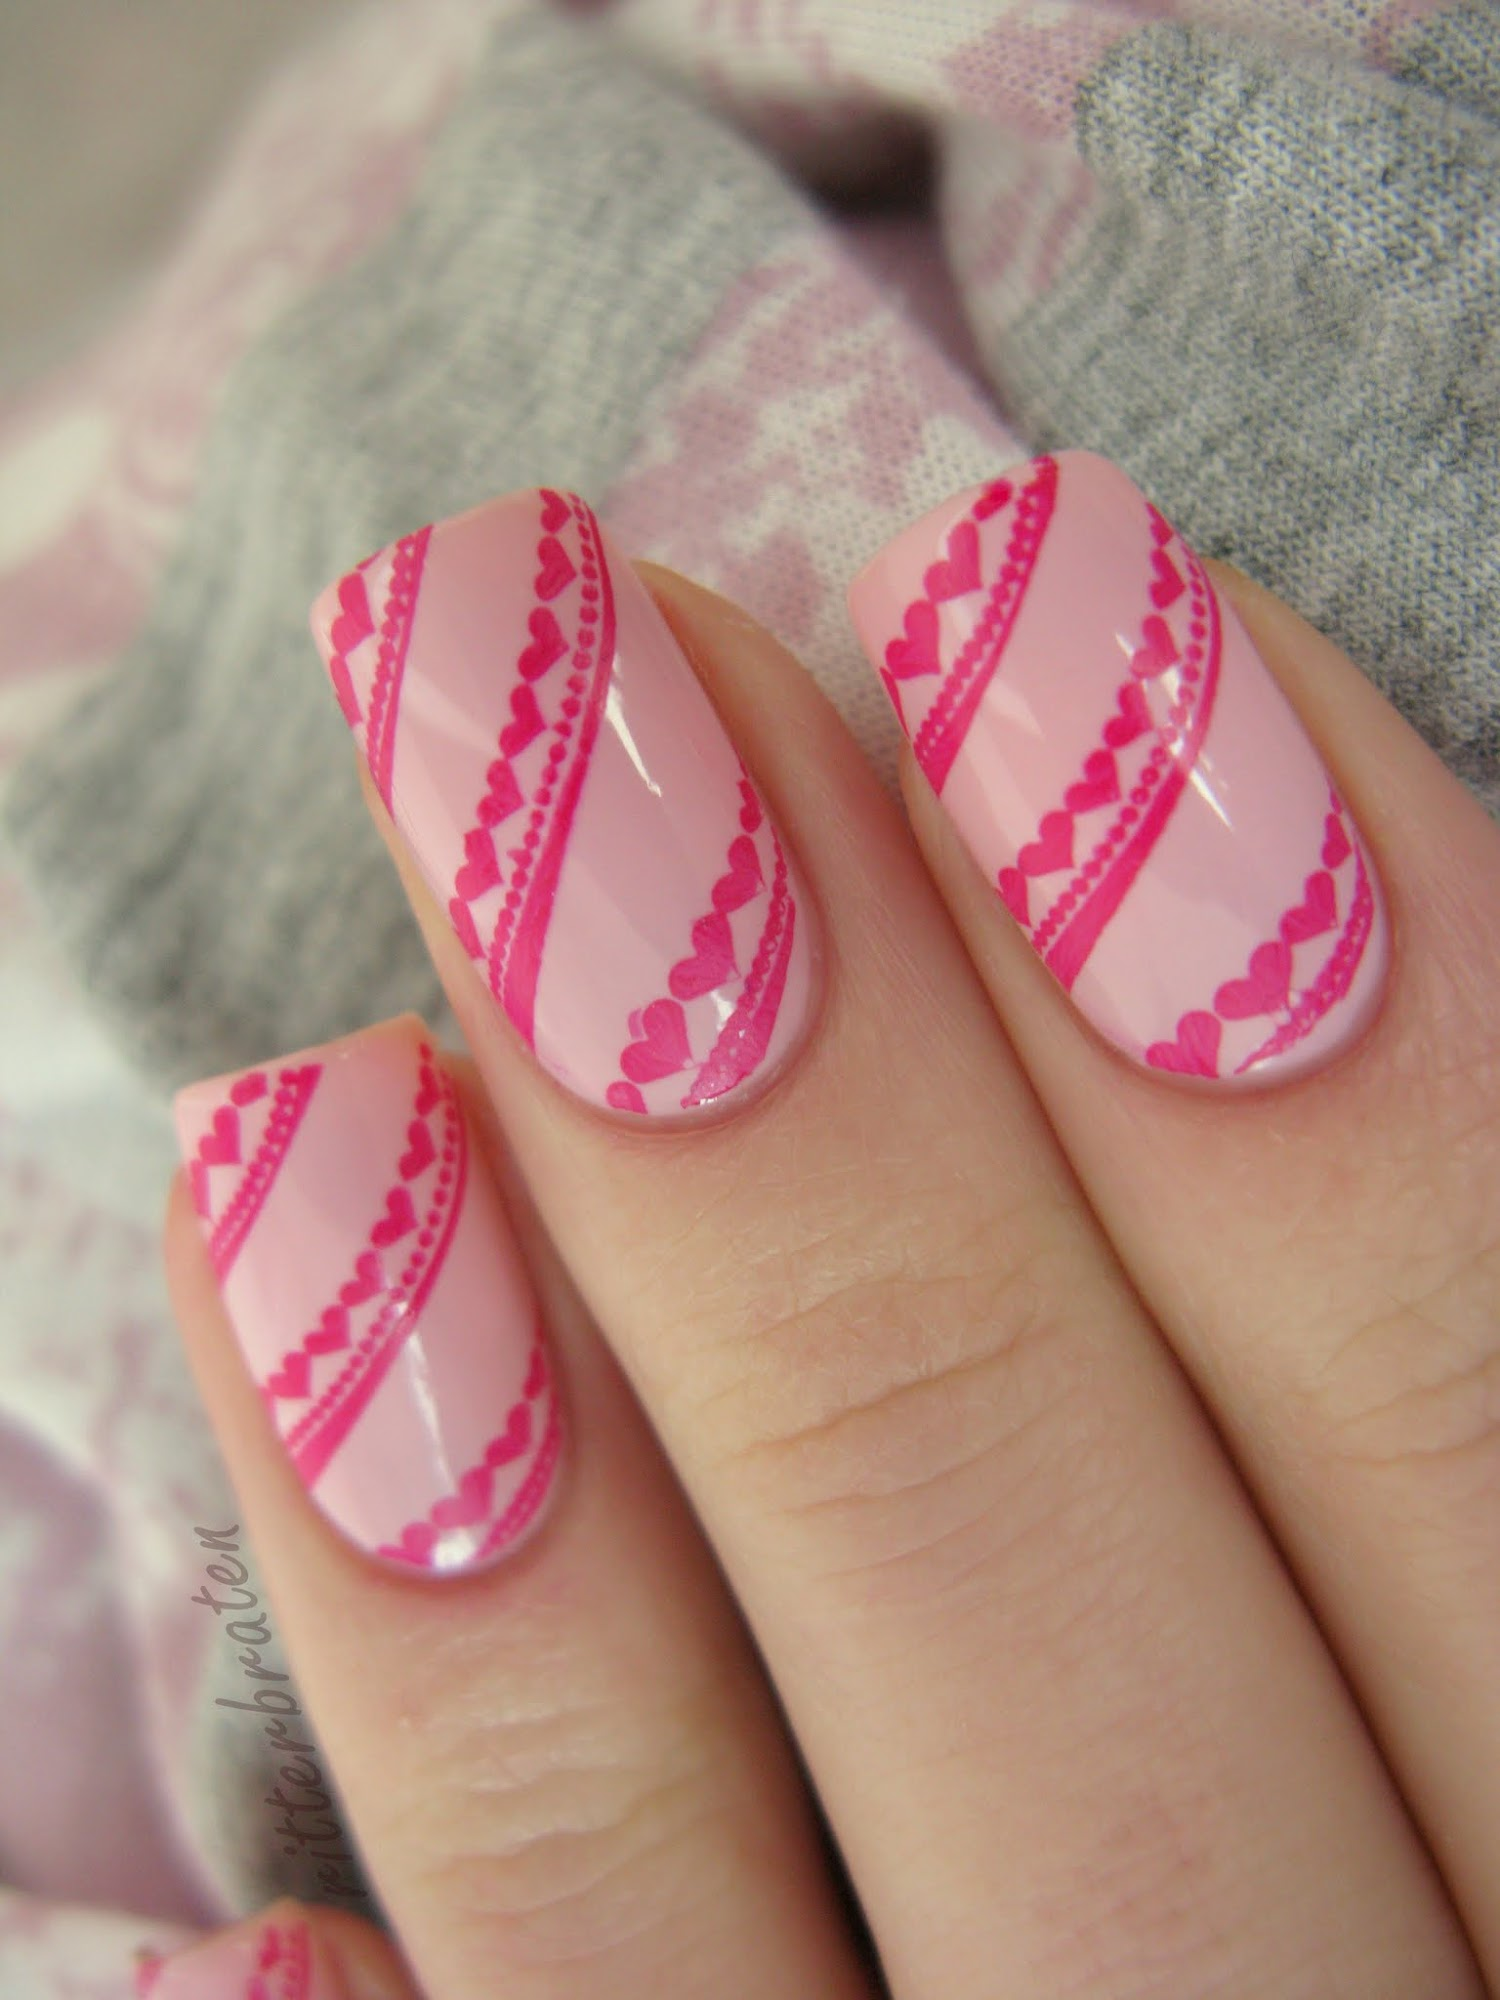 St. Valentine's Day nails